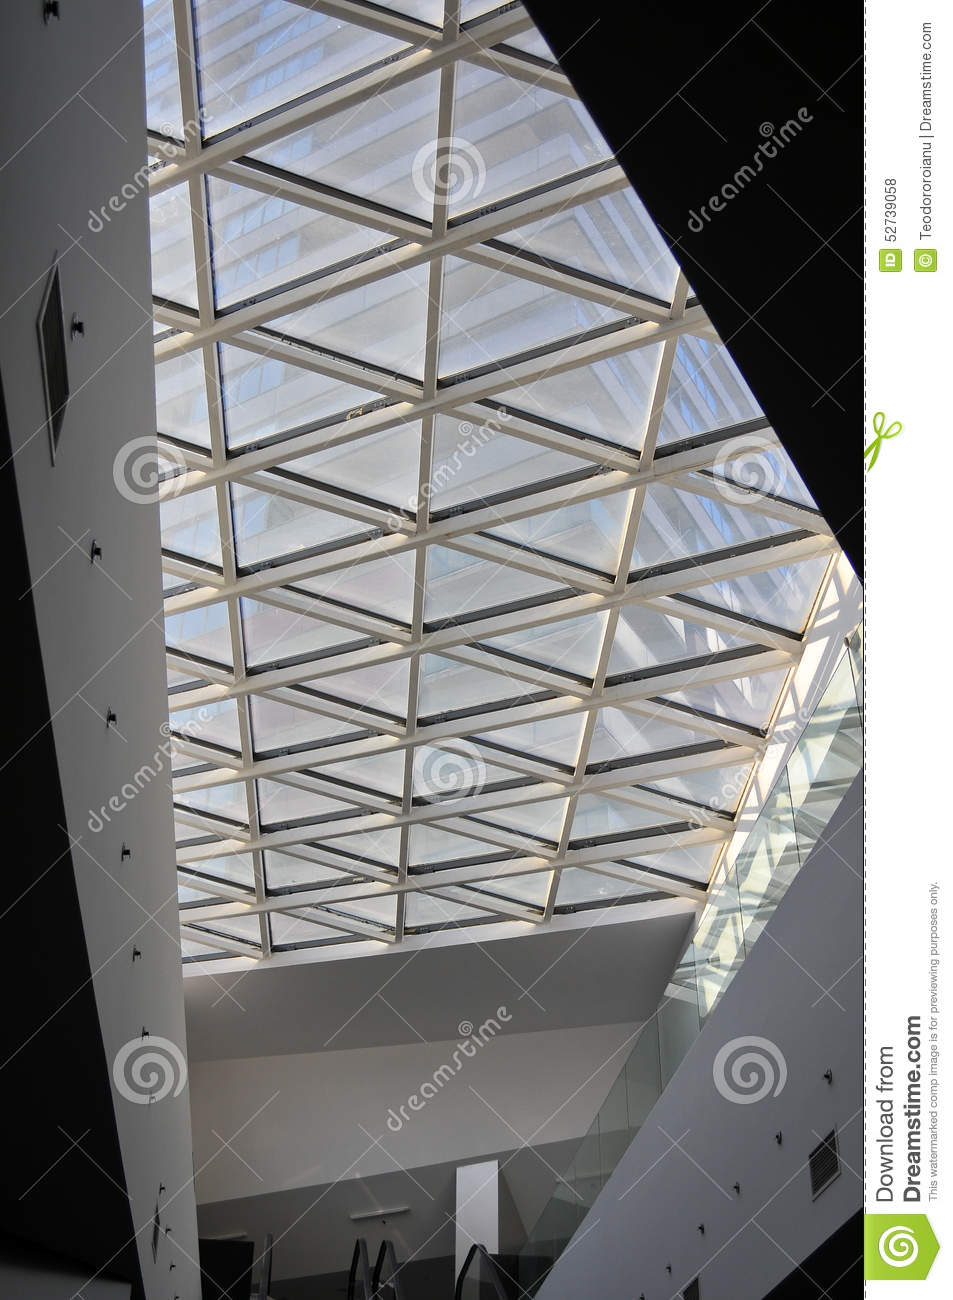 Skylight Design Mall Skylight Design Stock Photo  Image 52739058